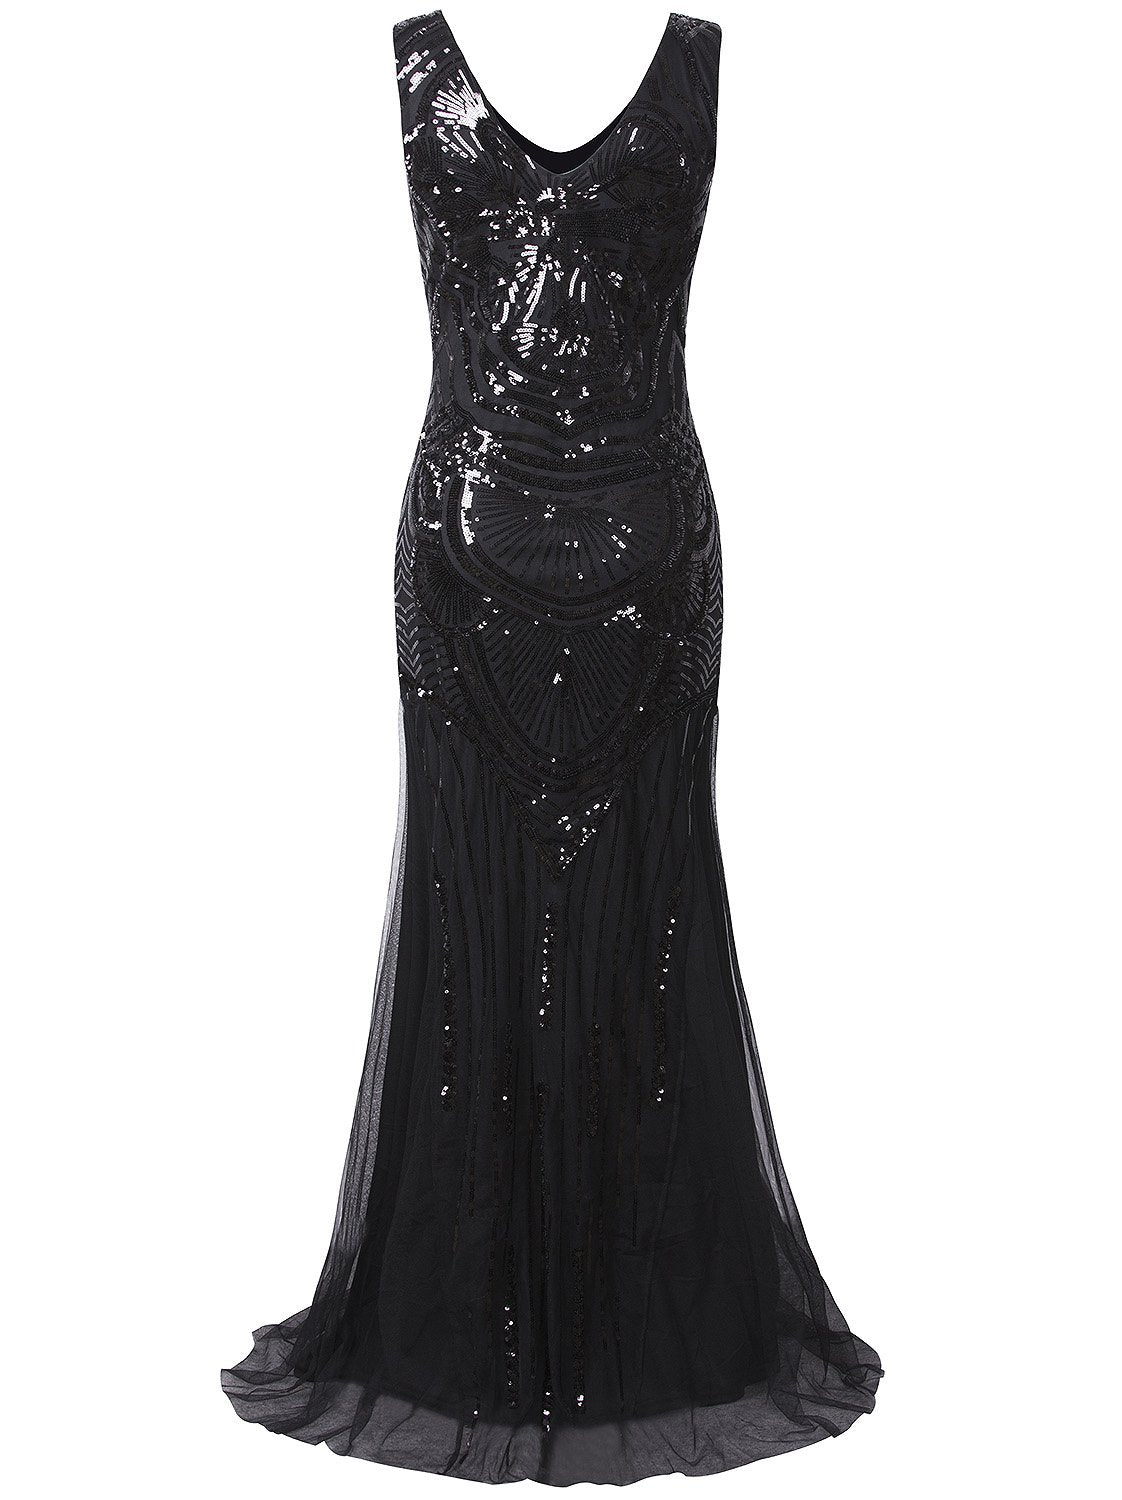 Vijiv 1920s Long Prom Dresses Sequin Beads Mermaid Great Gatsby Theme Wedding Party Dress,Black,Large